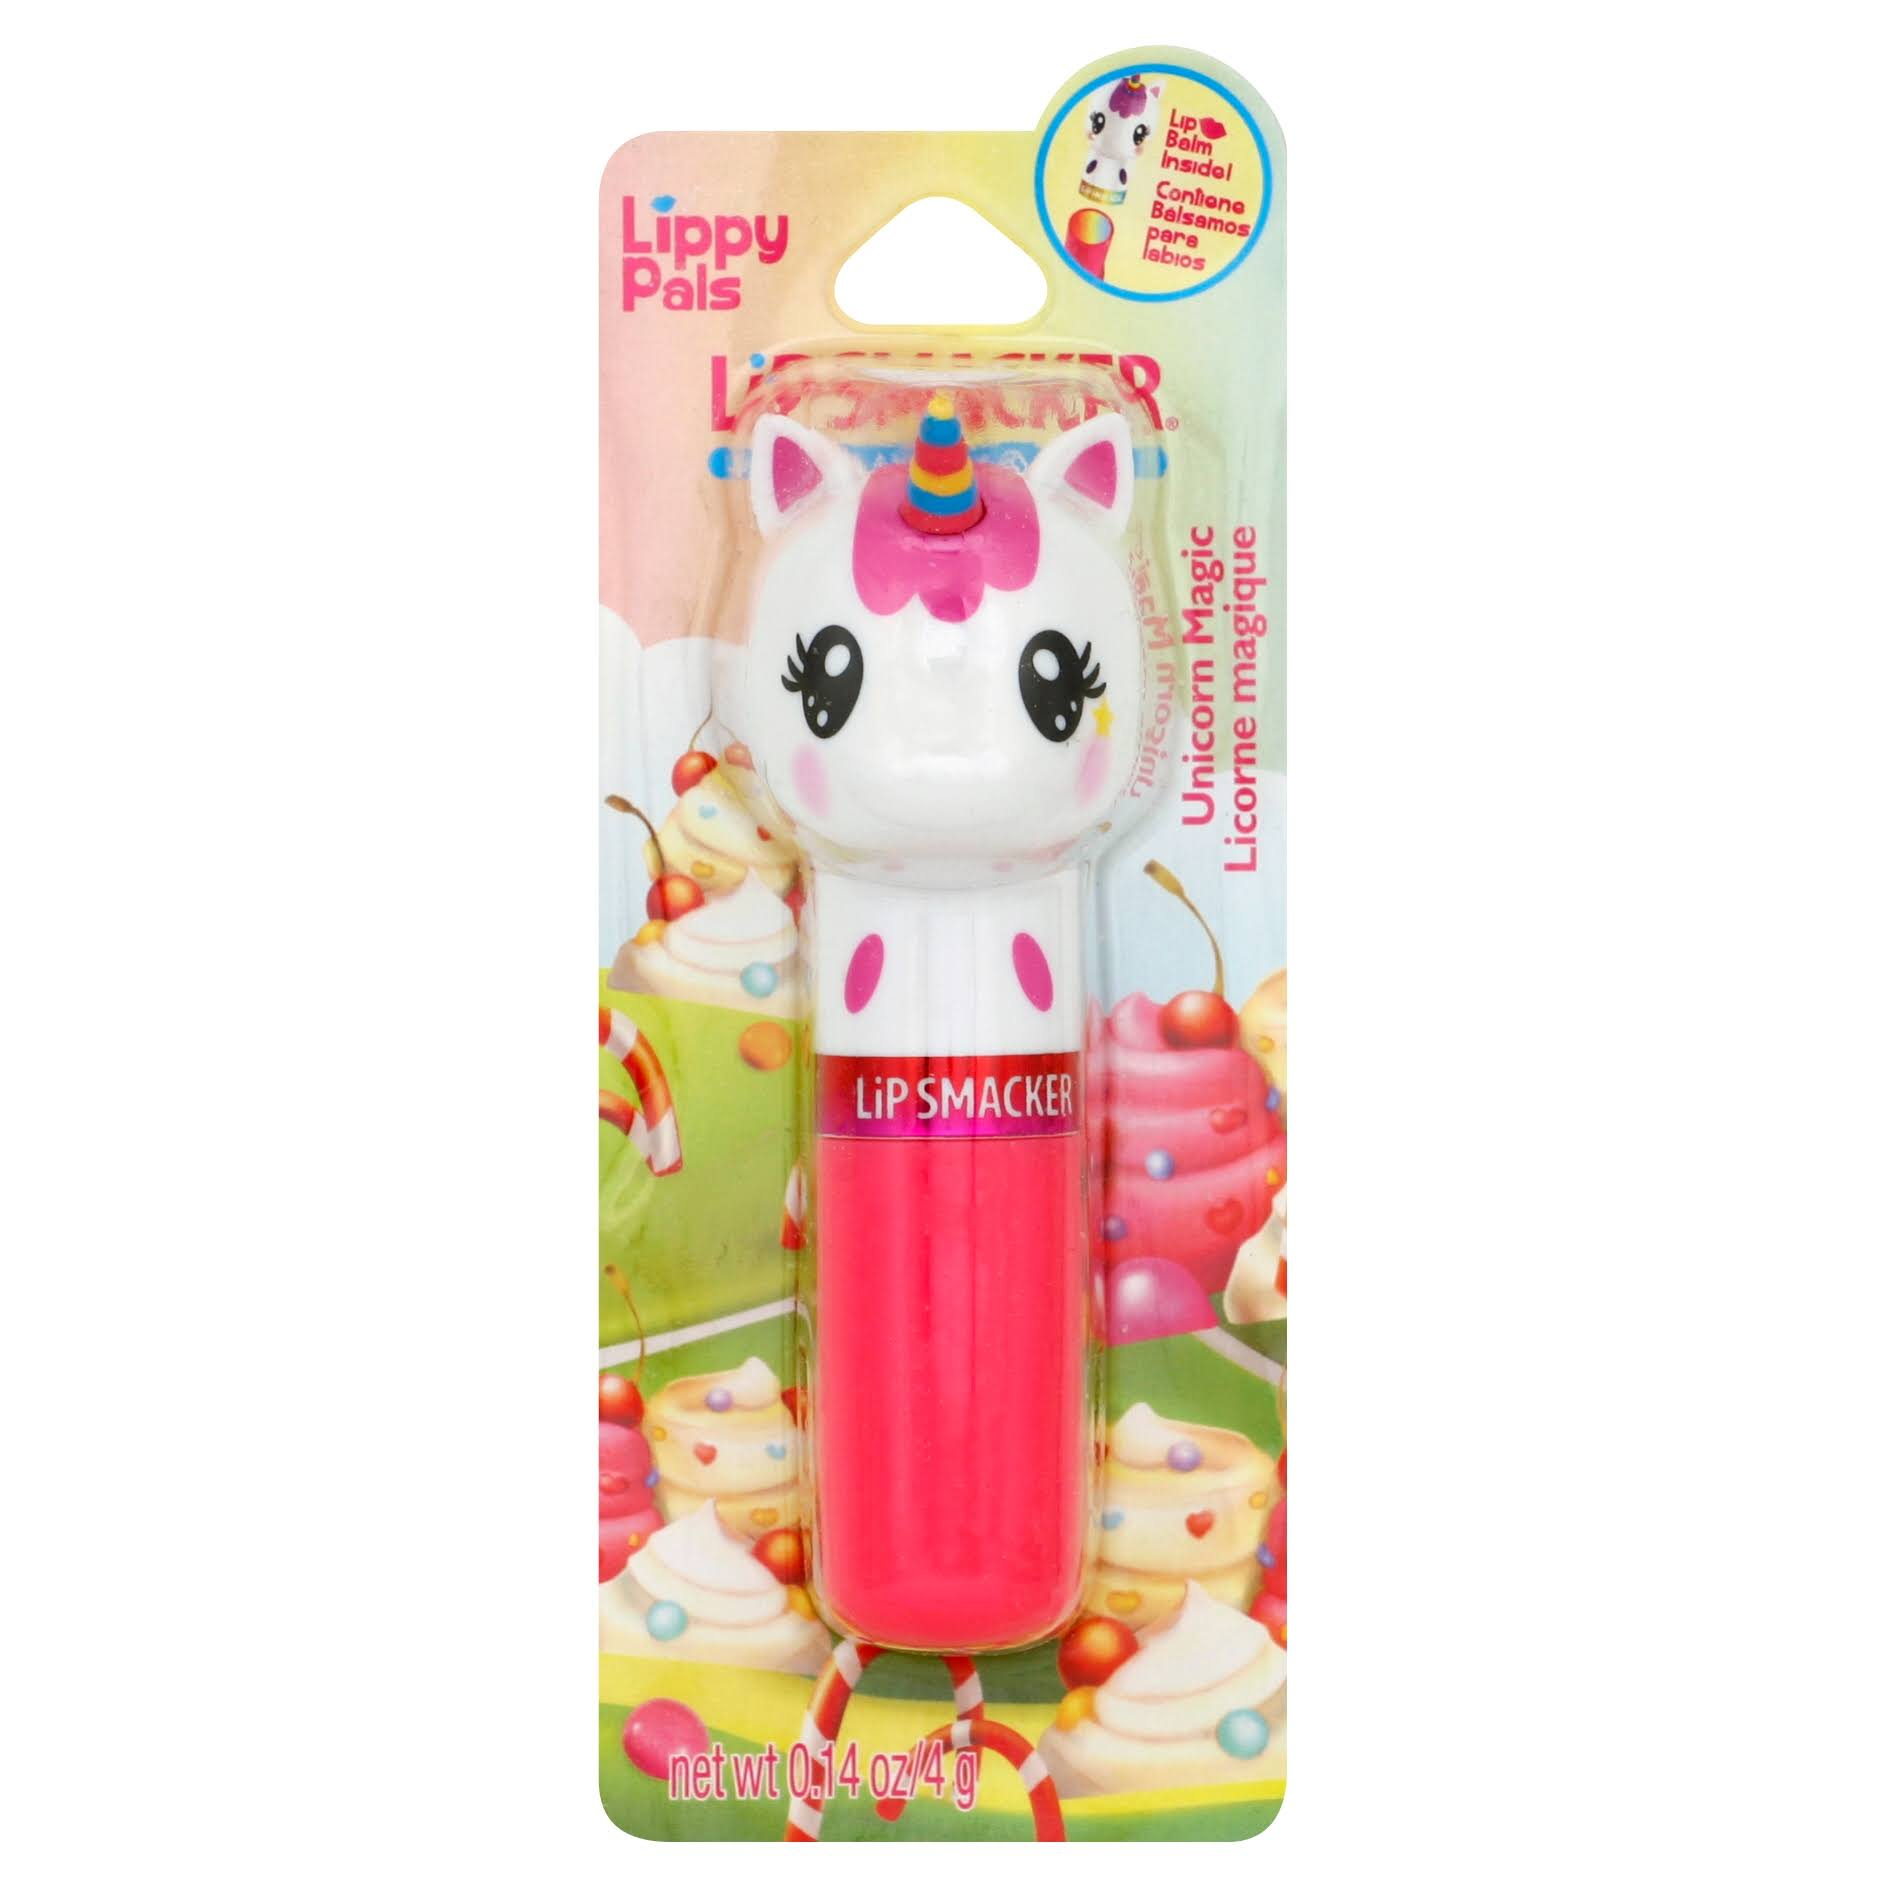 Lip Smacker Lip Balm - Unicorn Magic, 0.14oz